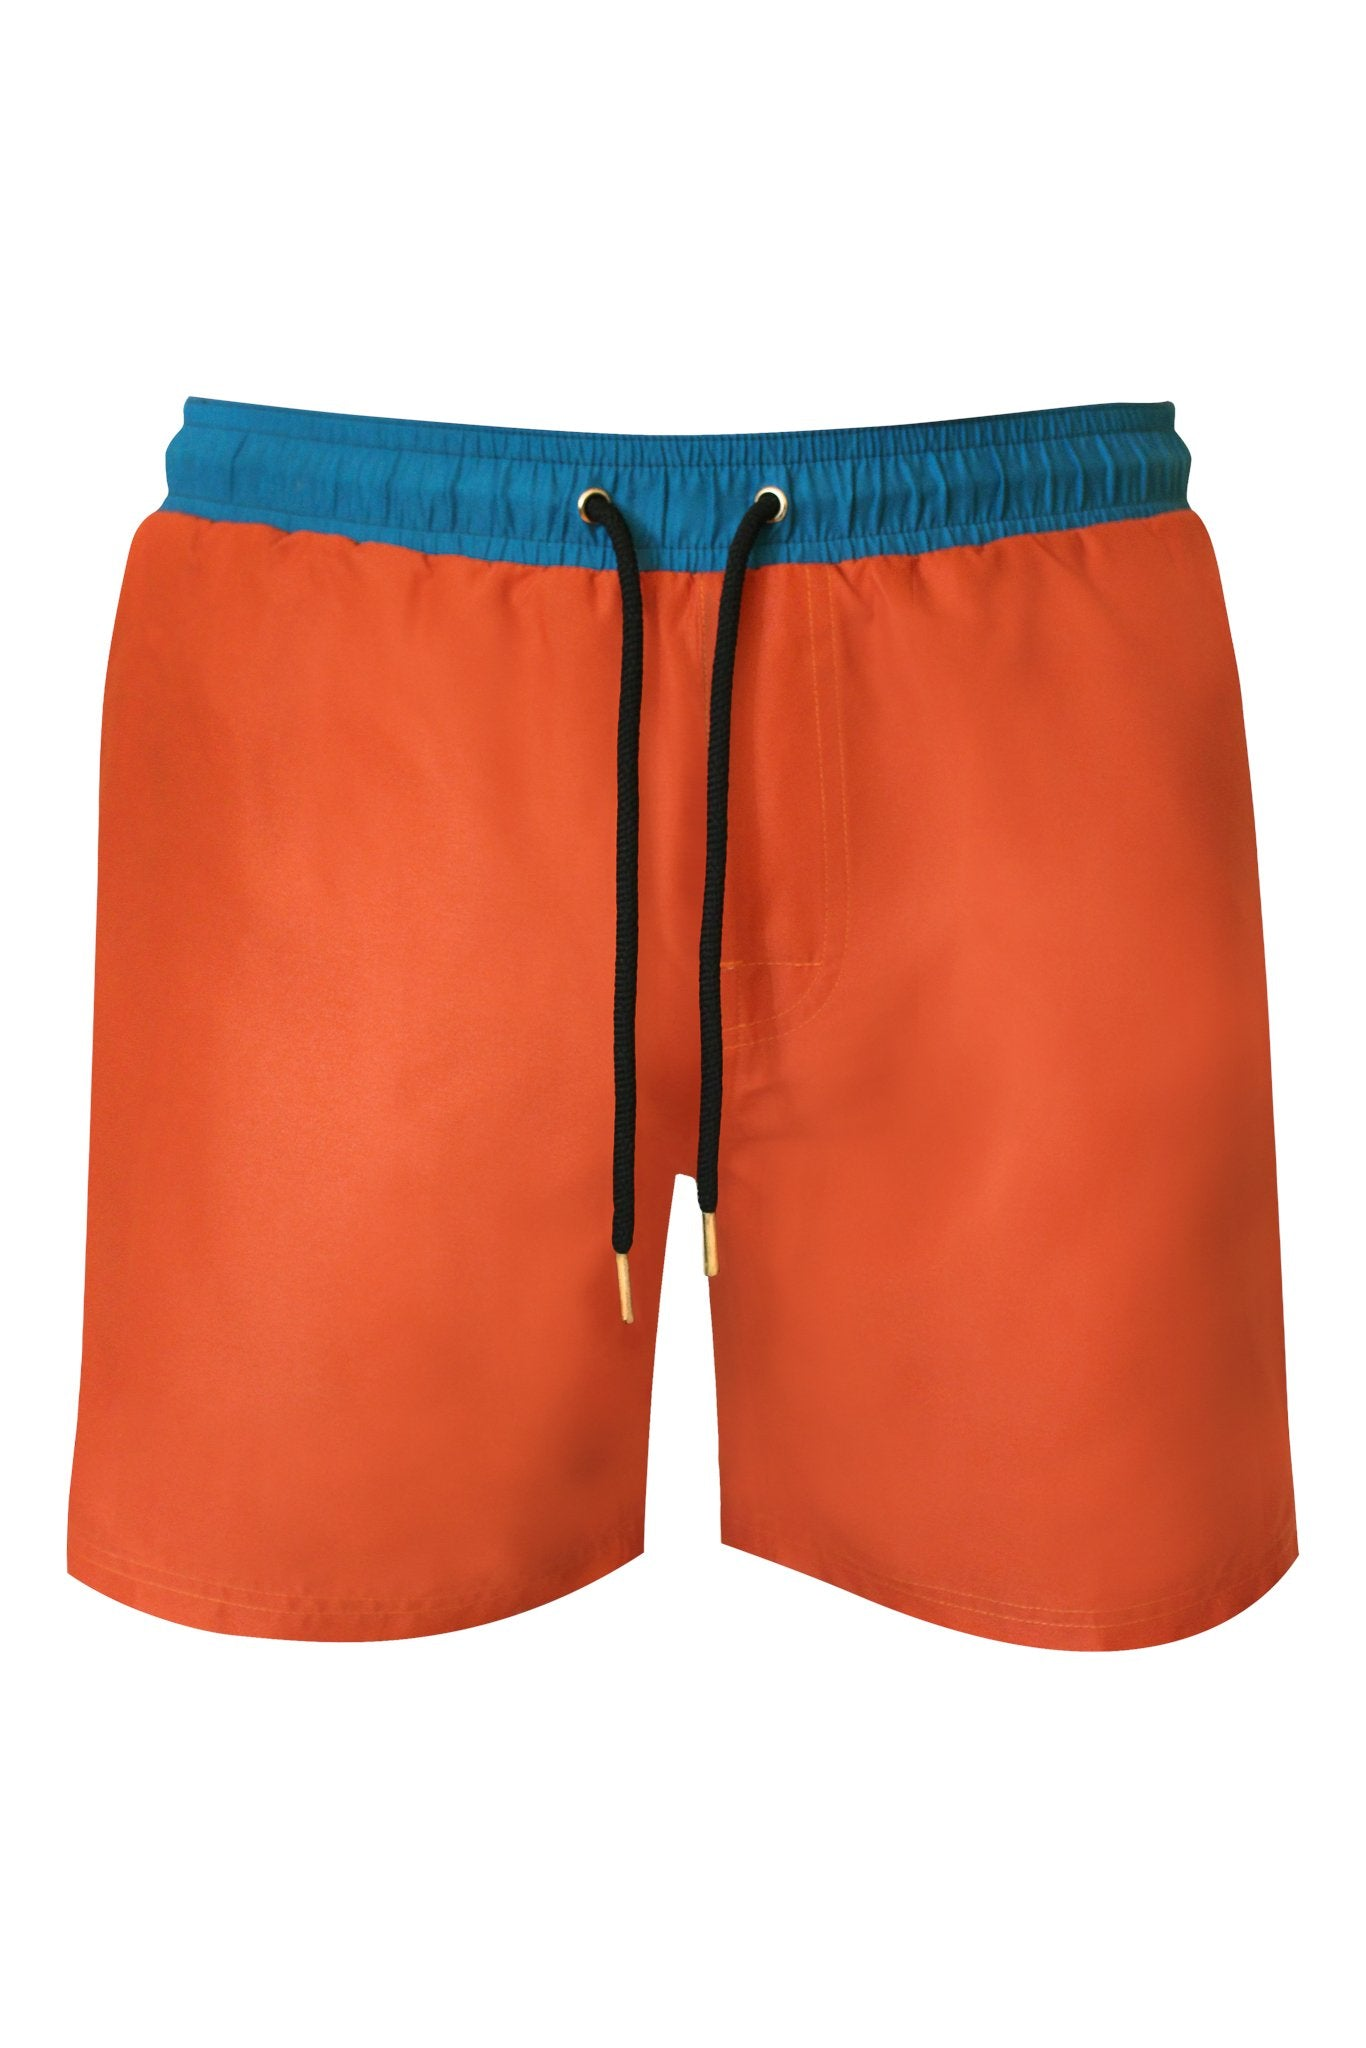 Marrakech Swim Trunks -  by Mer Culture Swimwear Hong Kong